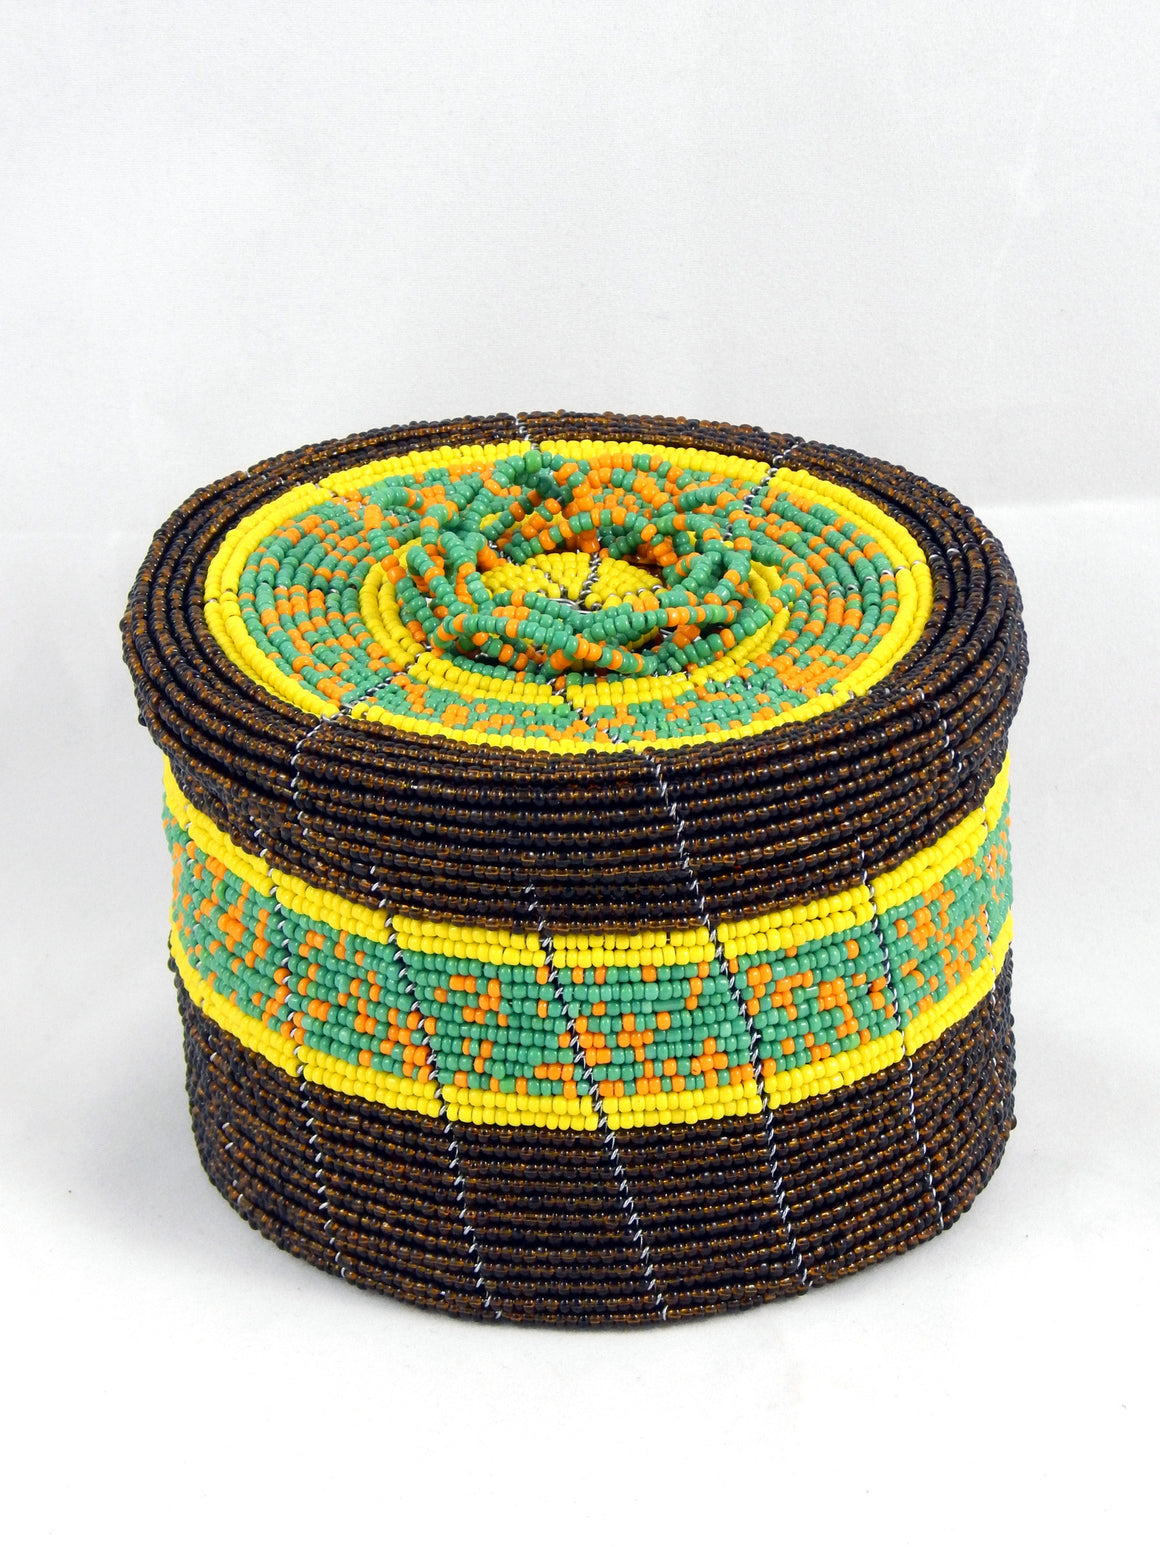 Maasai Jewelry Boxes